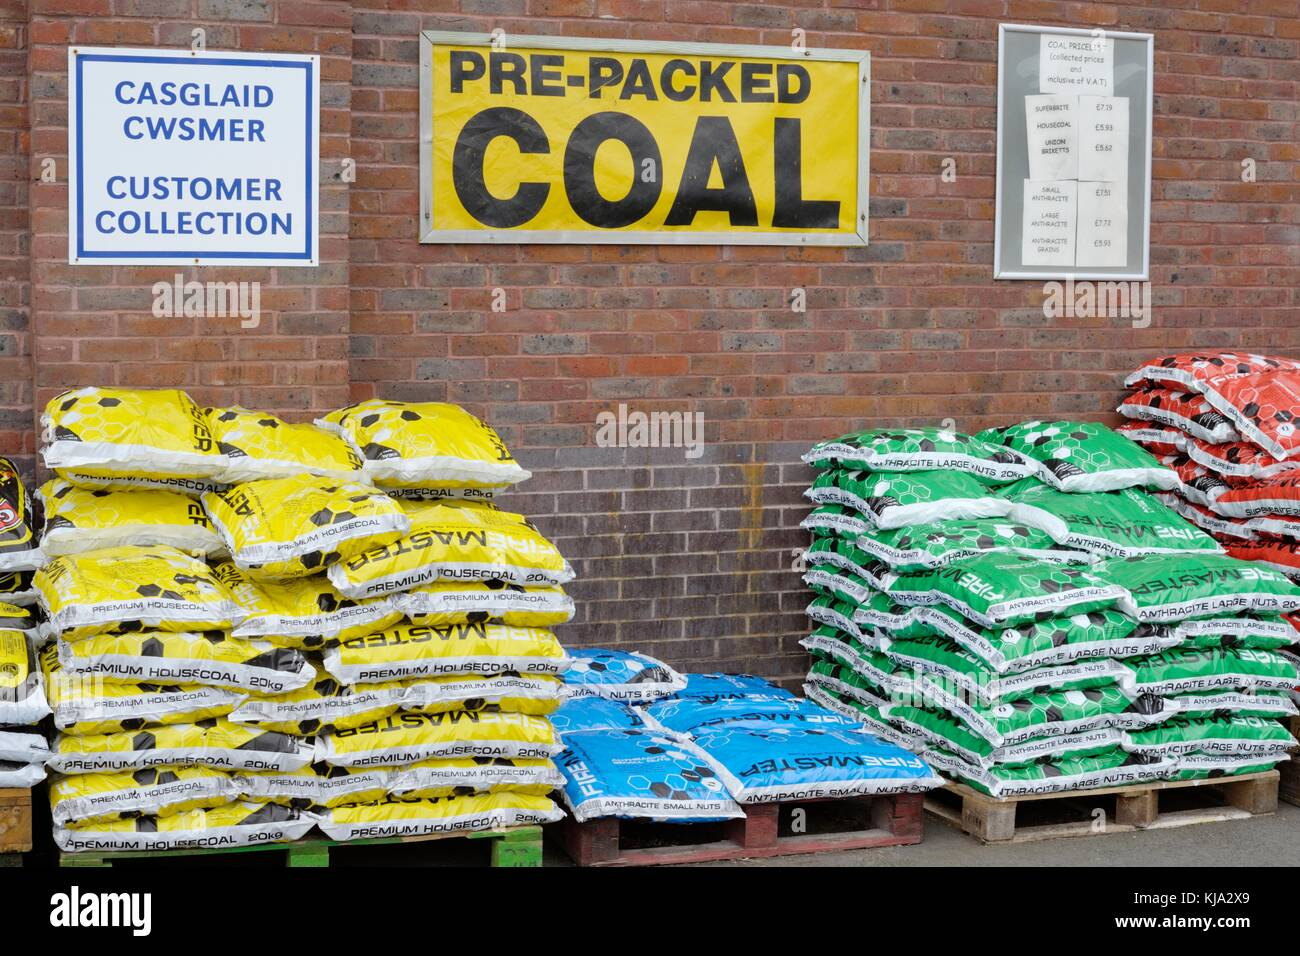 Varieties of pre packed coal and anthracite fuel  for sale, Wales, UK - Stock Image